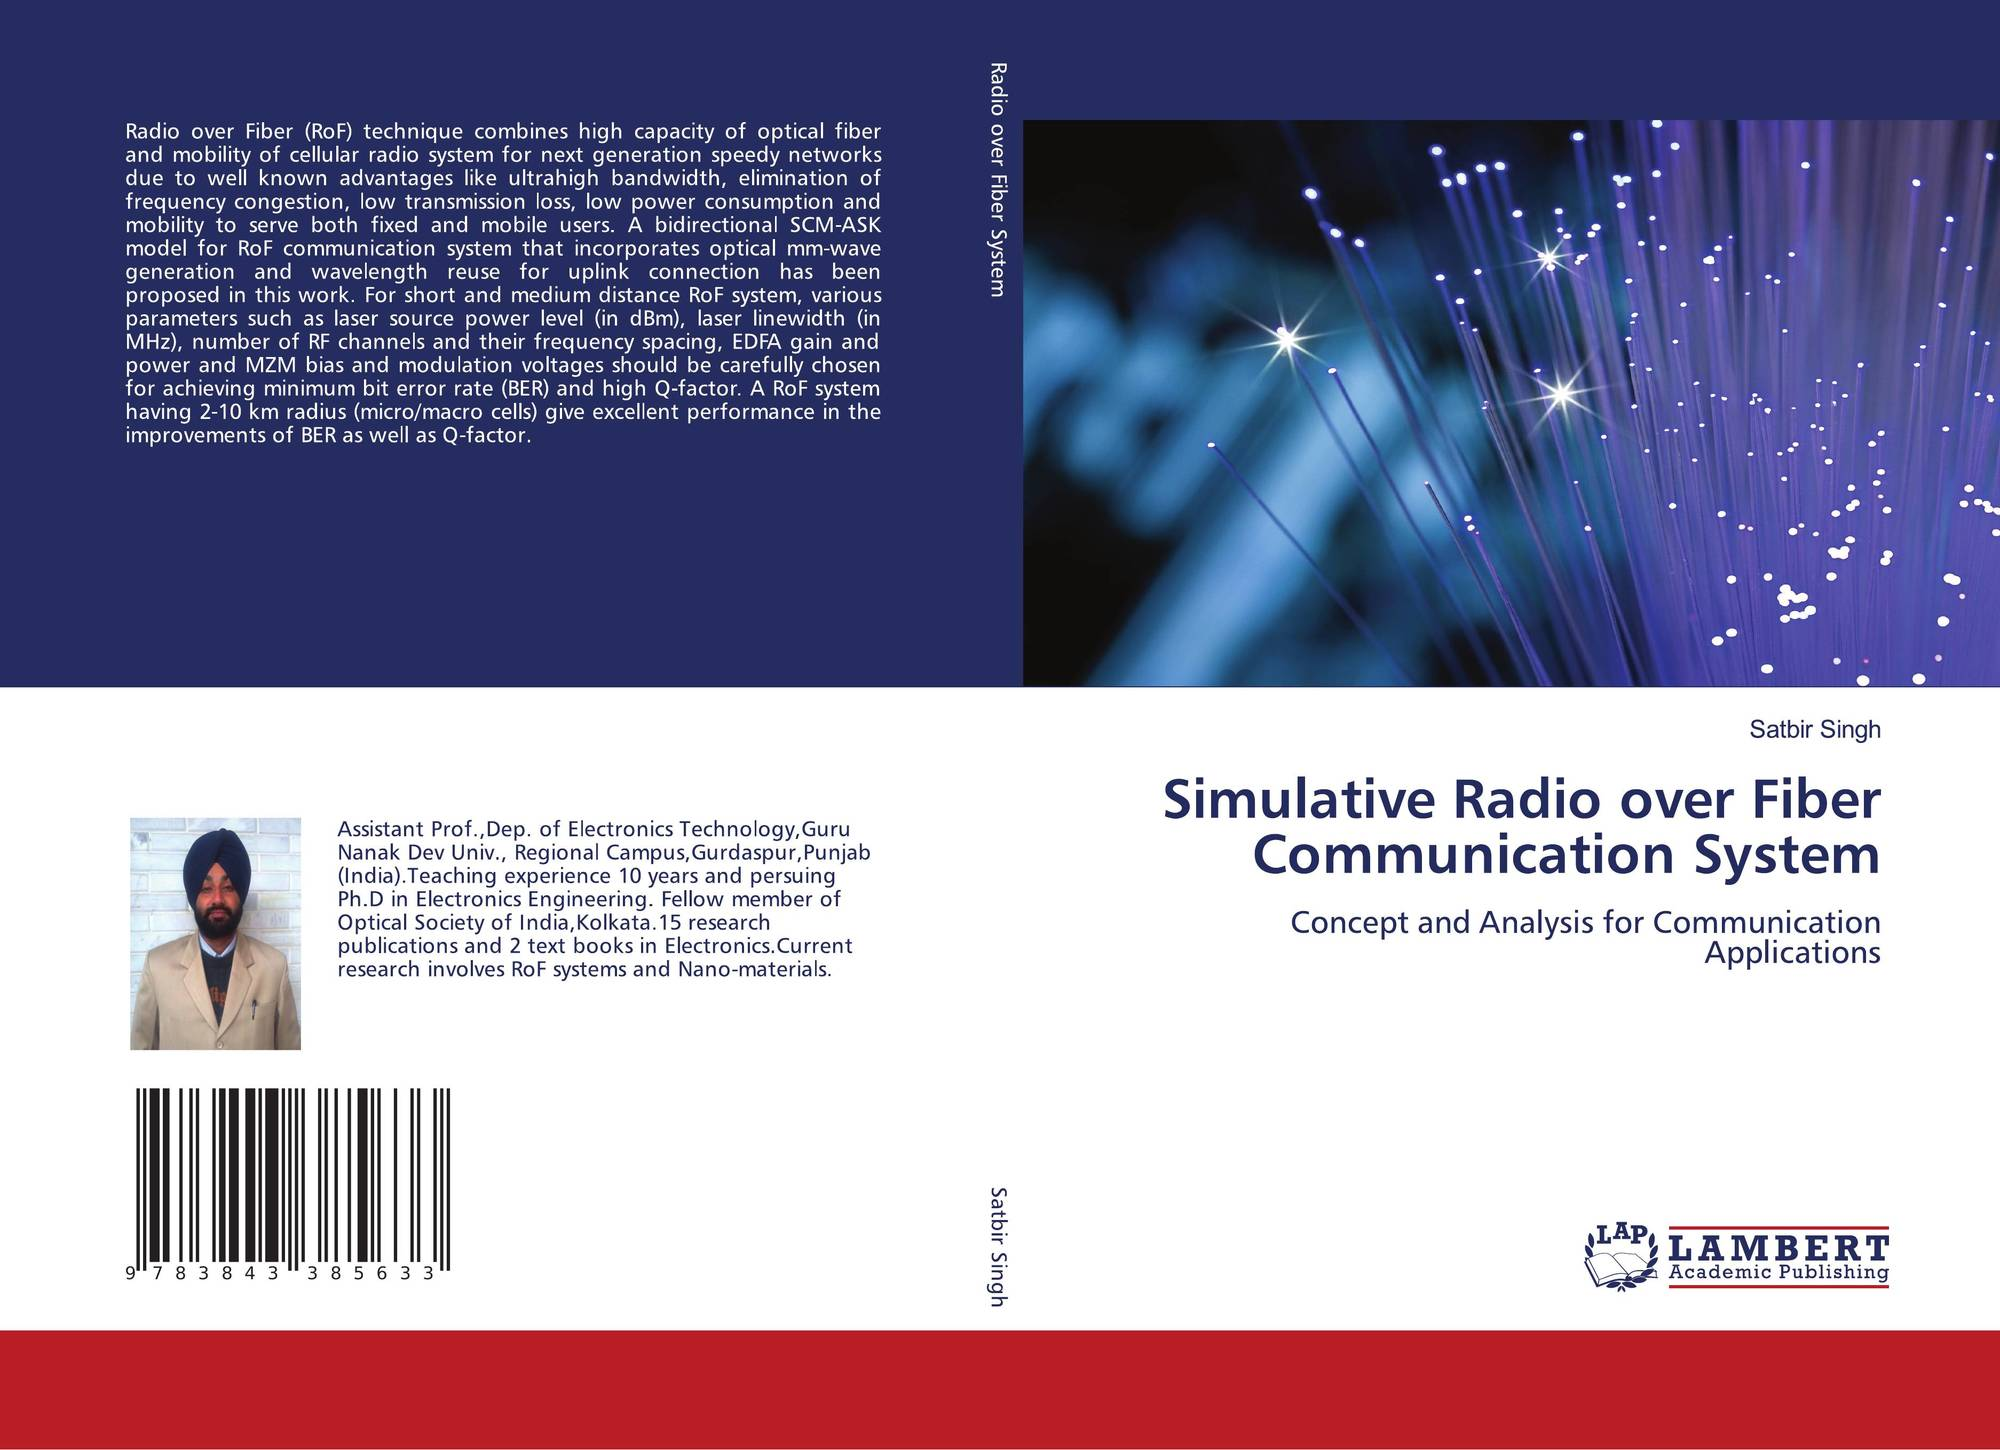 thesis on radio over fiber technology